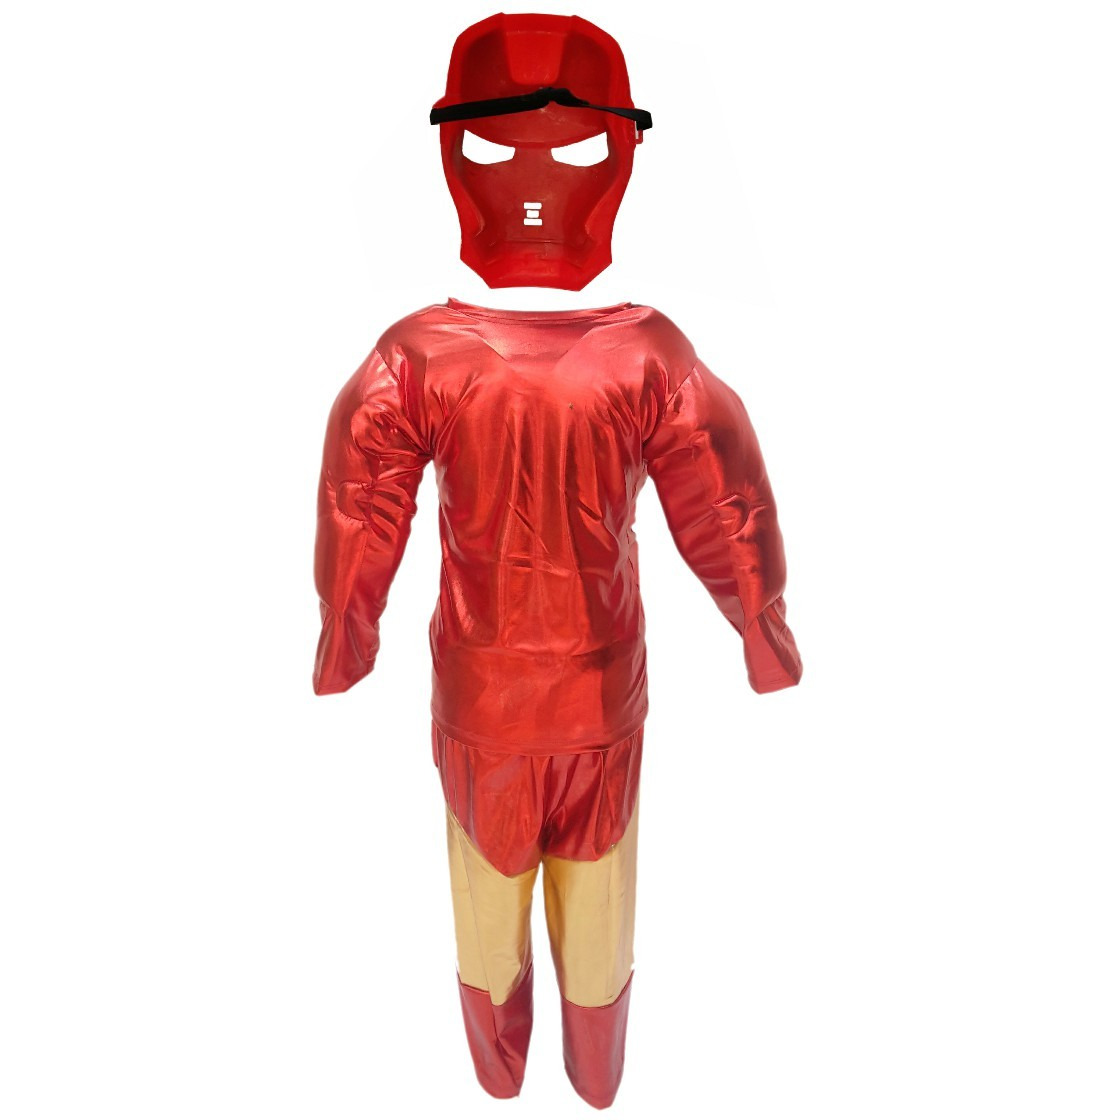 super hero costume for boy/ Annual function/Theme Party/Competition/Stage Shows/Birthday Party Dress